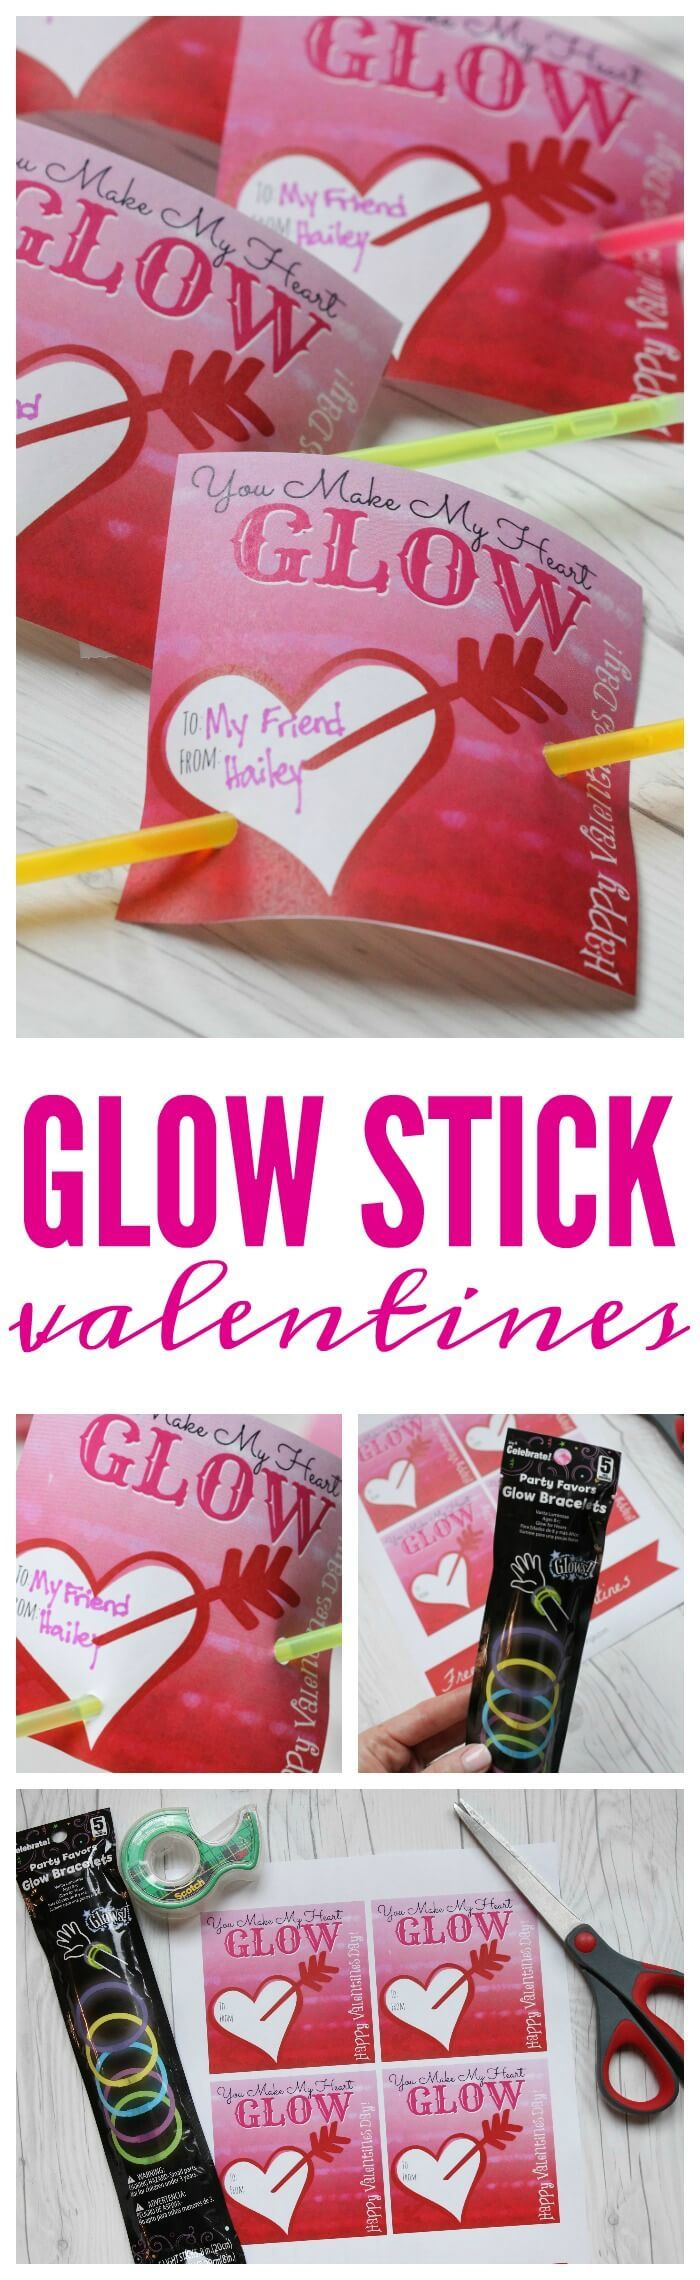 Valentine party ideas for church - Adorable Glow Stick Printables You Can Use To Make This Non Candy Valentines Day Idea For